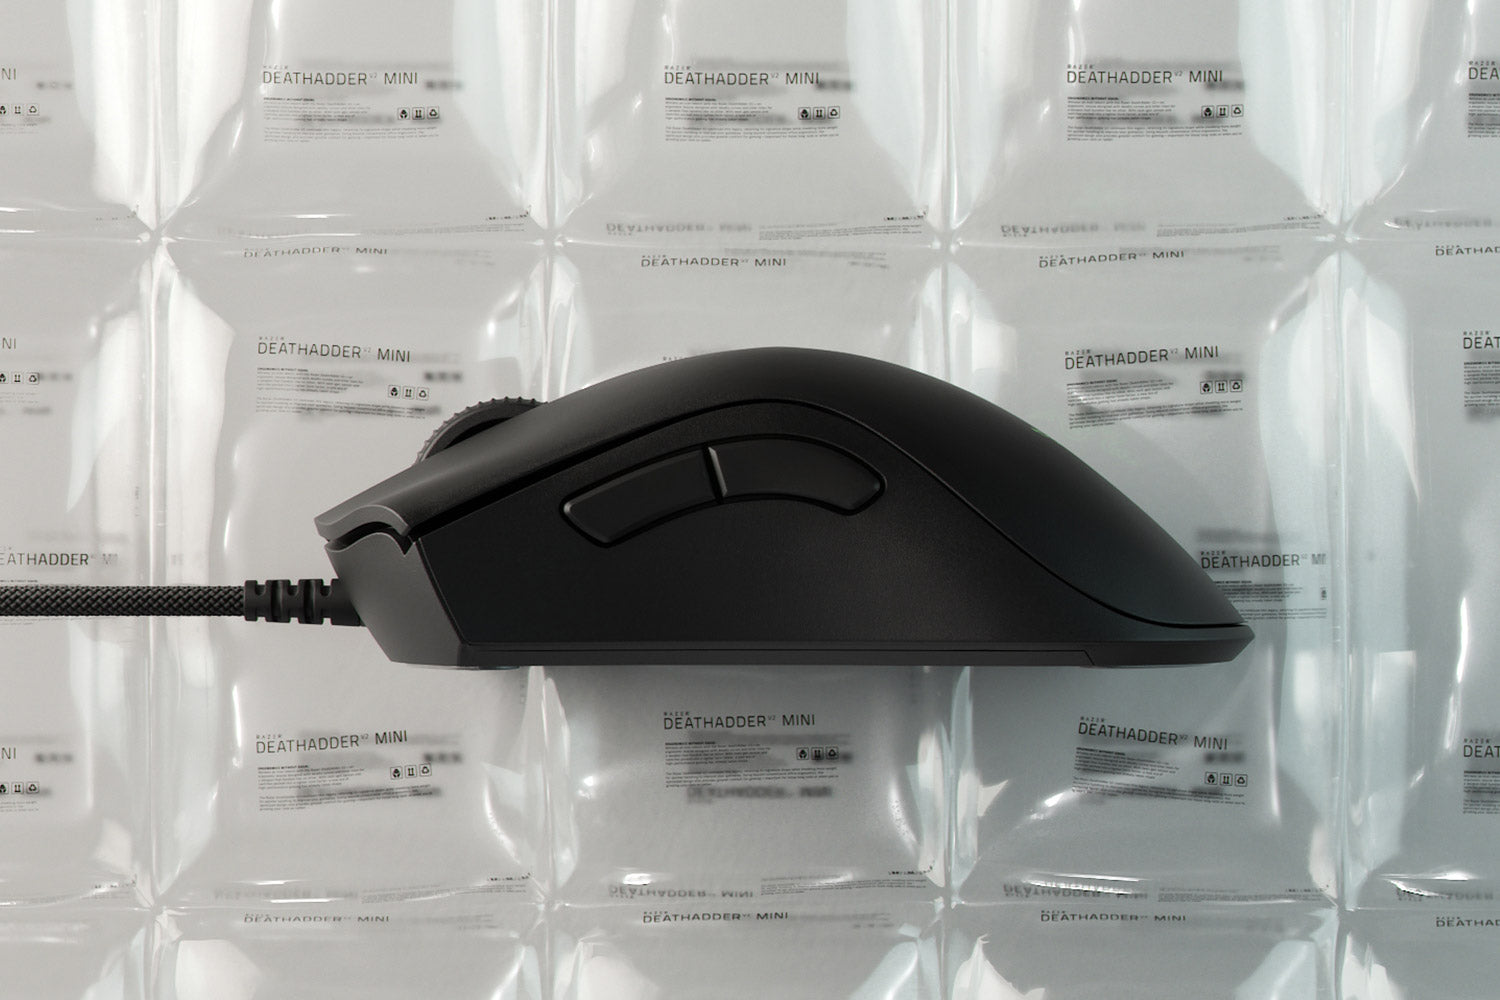 62G ULTRA-LIGHTWEIGHT ERGONOMIC DESIGN - Derived from our award-winning DeathAdder ergonomics, its smaller form factor is designed for small to medium hand sizes, and is versatile enough to accommodate most grip styles. At zero cost to build strength, the chassis has also shed more weight so you can pull off effortless swipes and play for long hours in comfort.